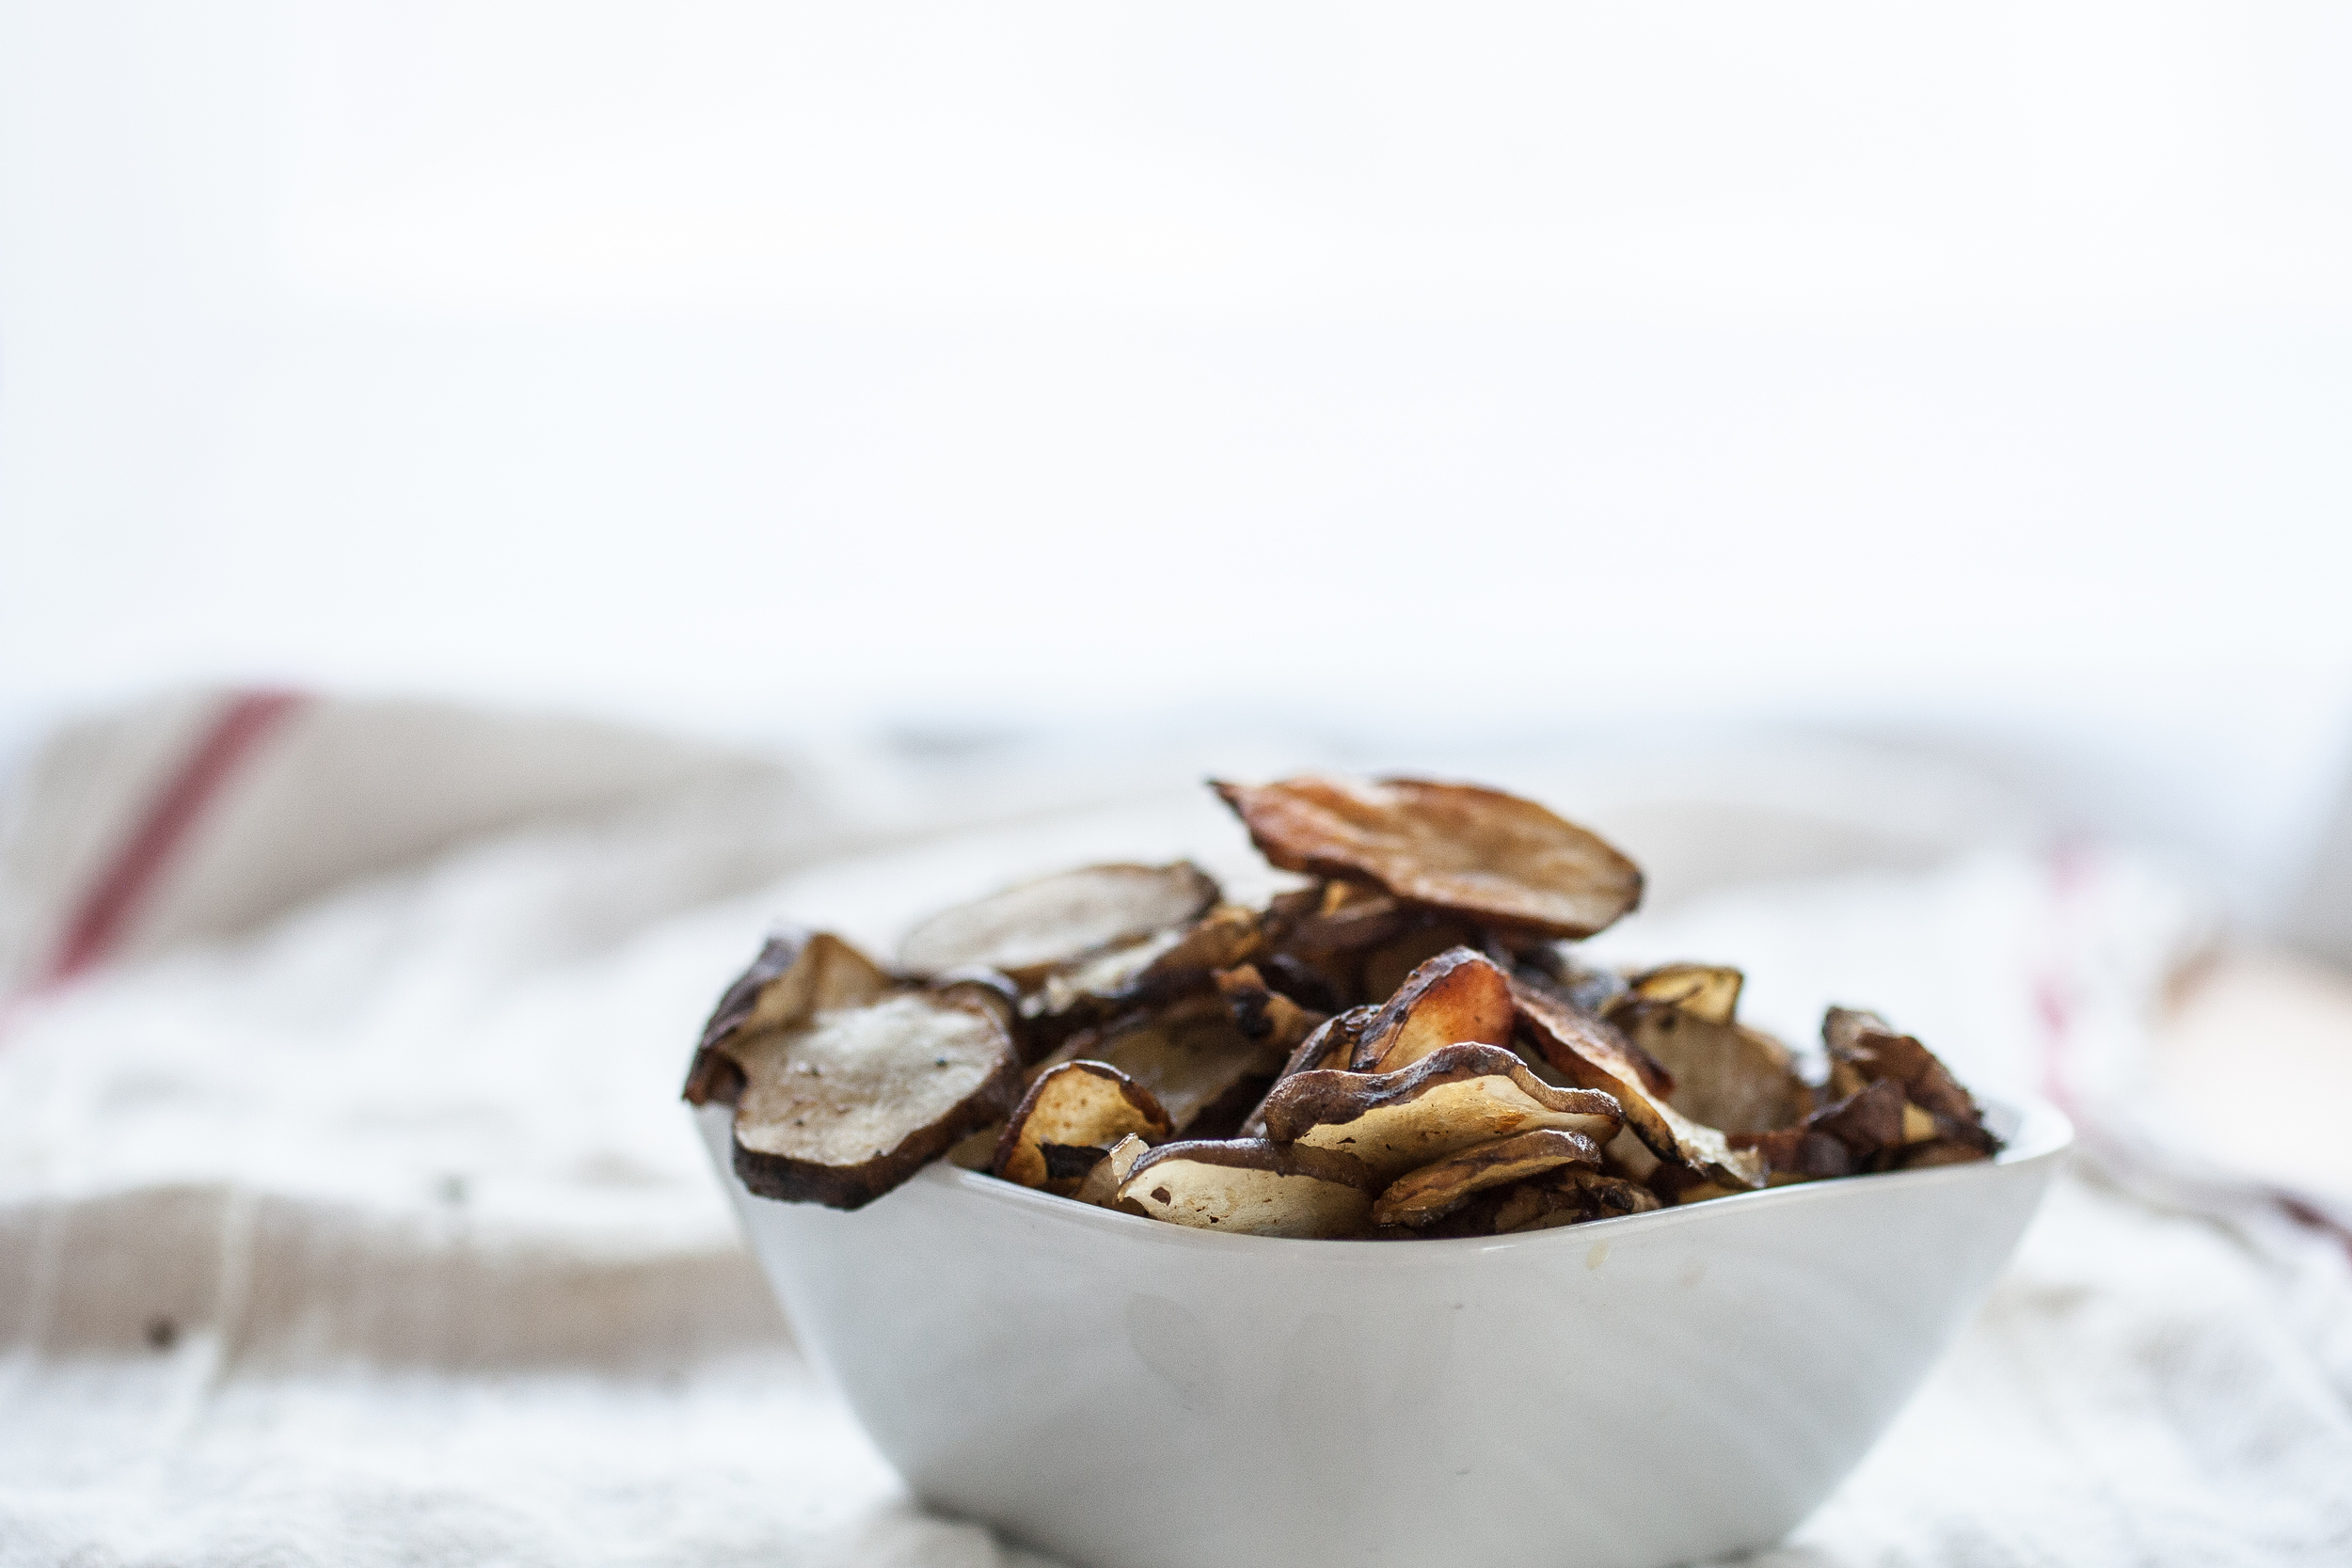 Produce On Parade - Nutmeg Scented Roasted Sunchokes - These nutty sunchokes are toasted in olive oil and simply sprinkled with salt. Laced with fresh nutmeg for hint of sweetness and warmth, they're a perfect healthy winter snack.